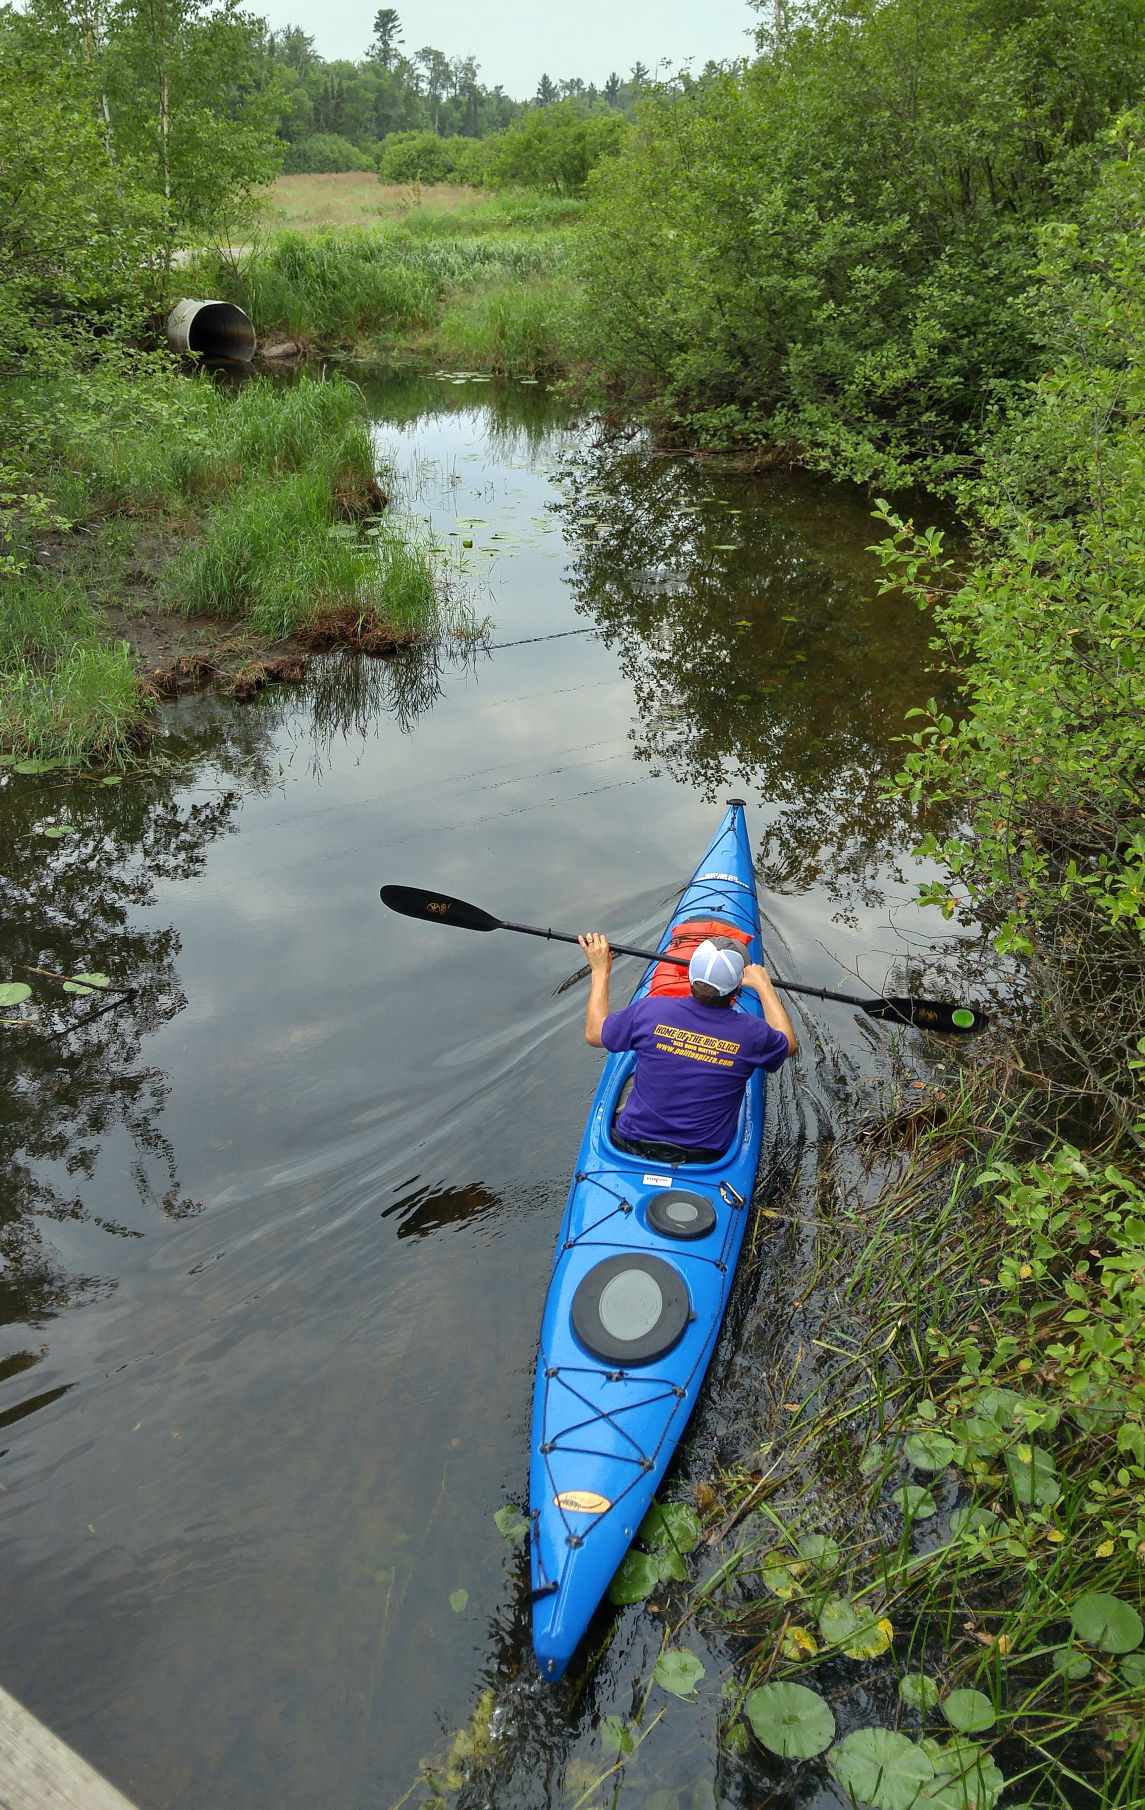 Man tries to set solo record for paddling Wisconsin River | Regional